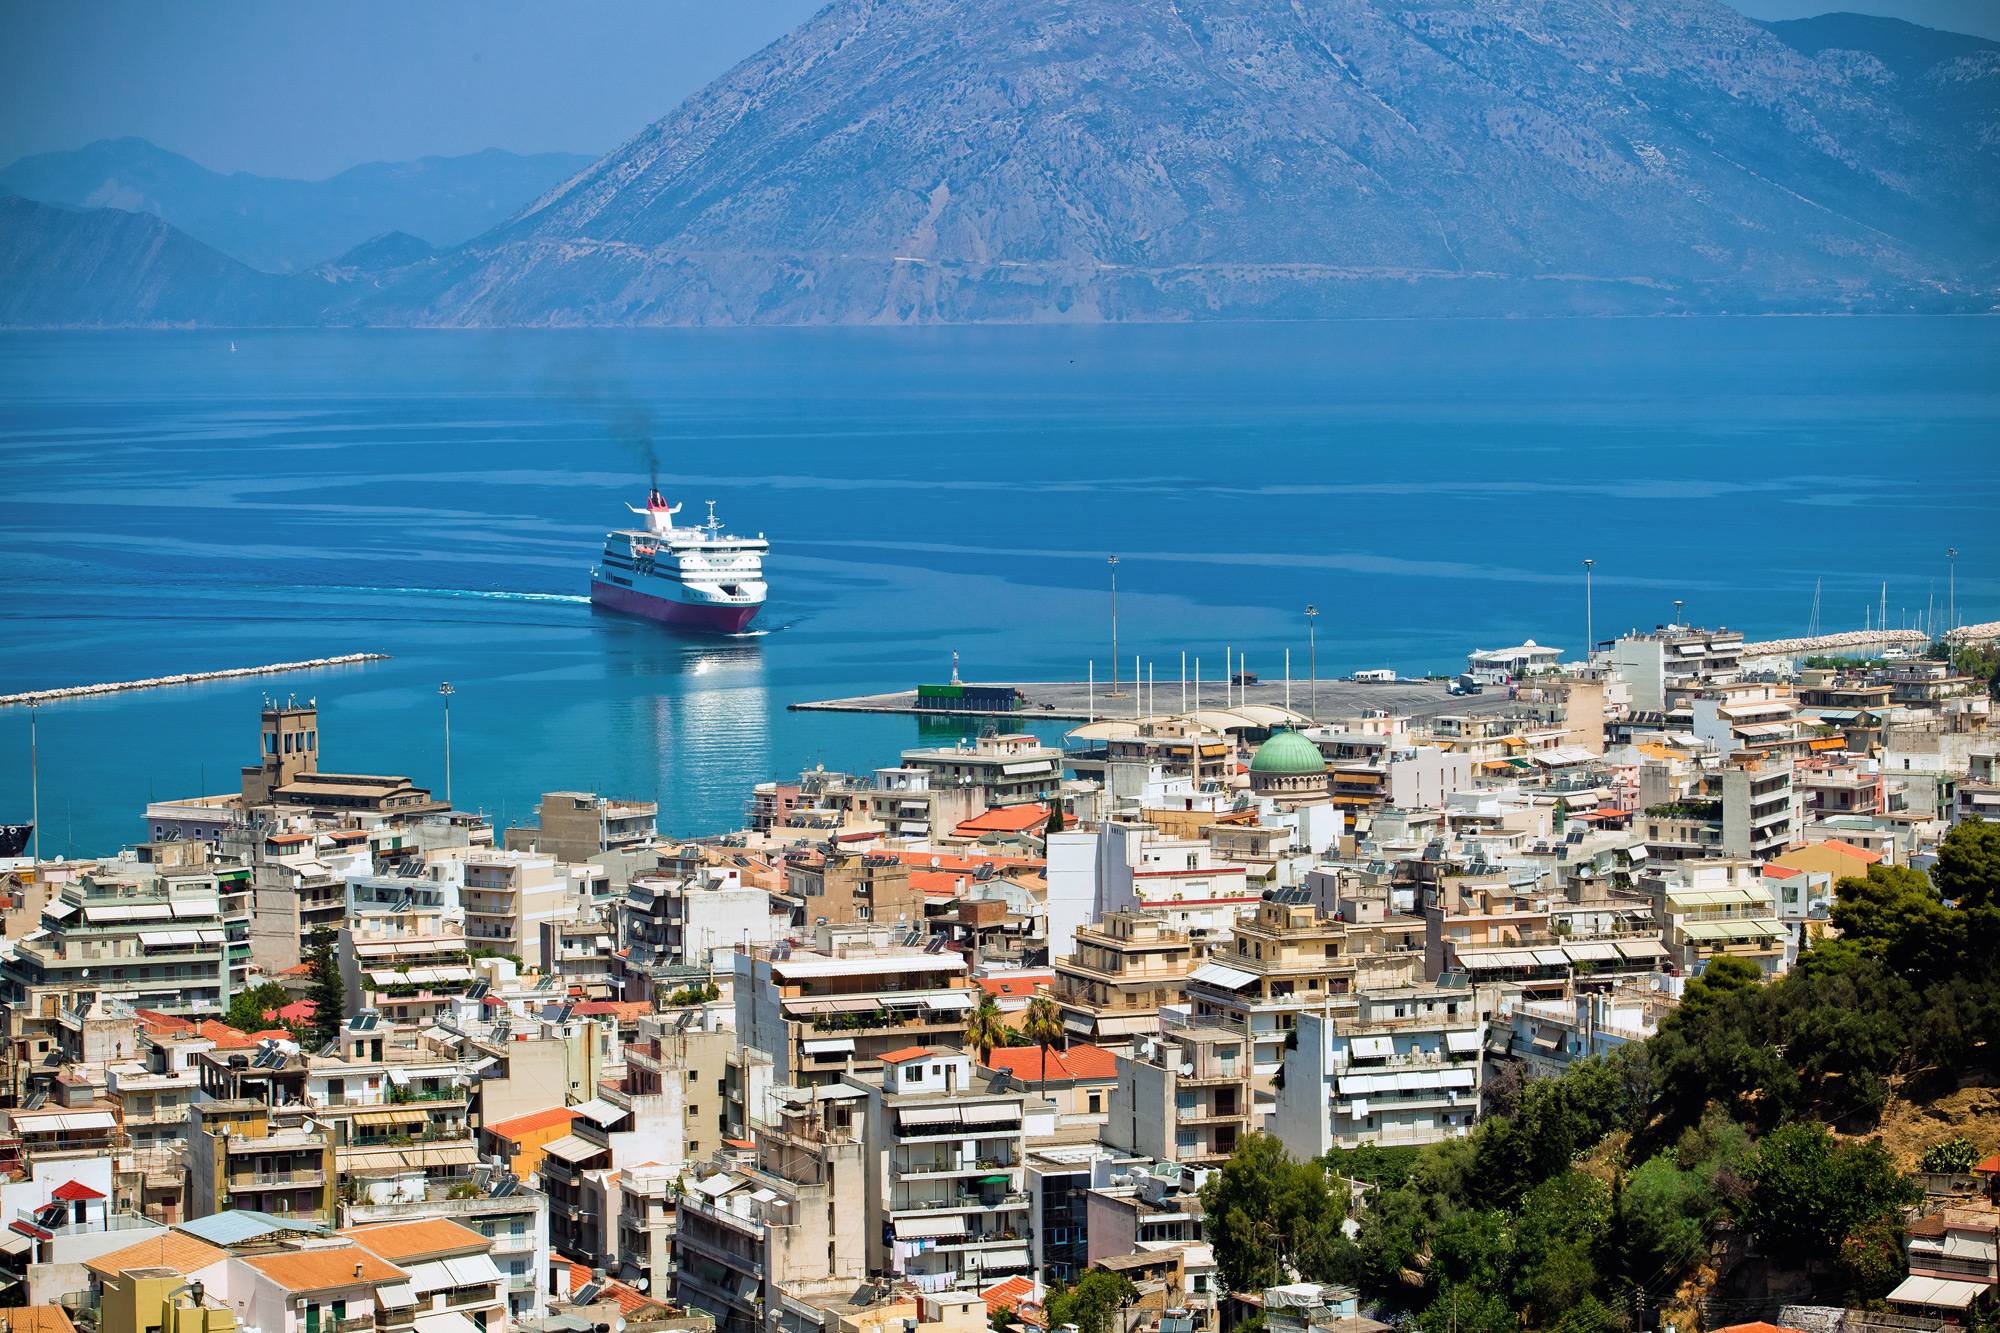 Patras Tourism: TripAdvisor has 10 reviews of Patras Hotels, Attractions, and Restaurants making it your best Patras resource.